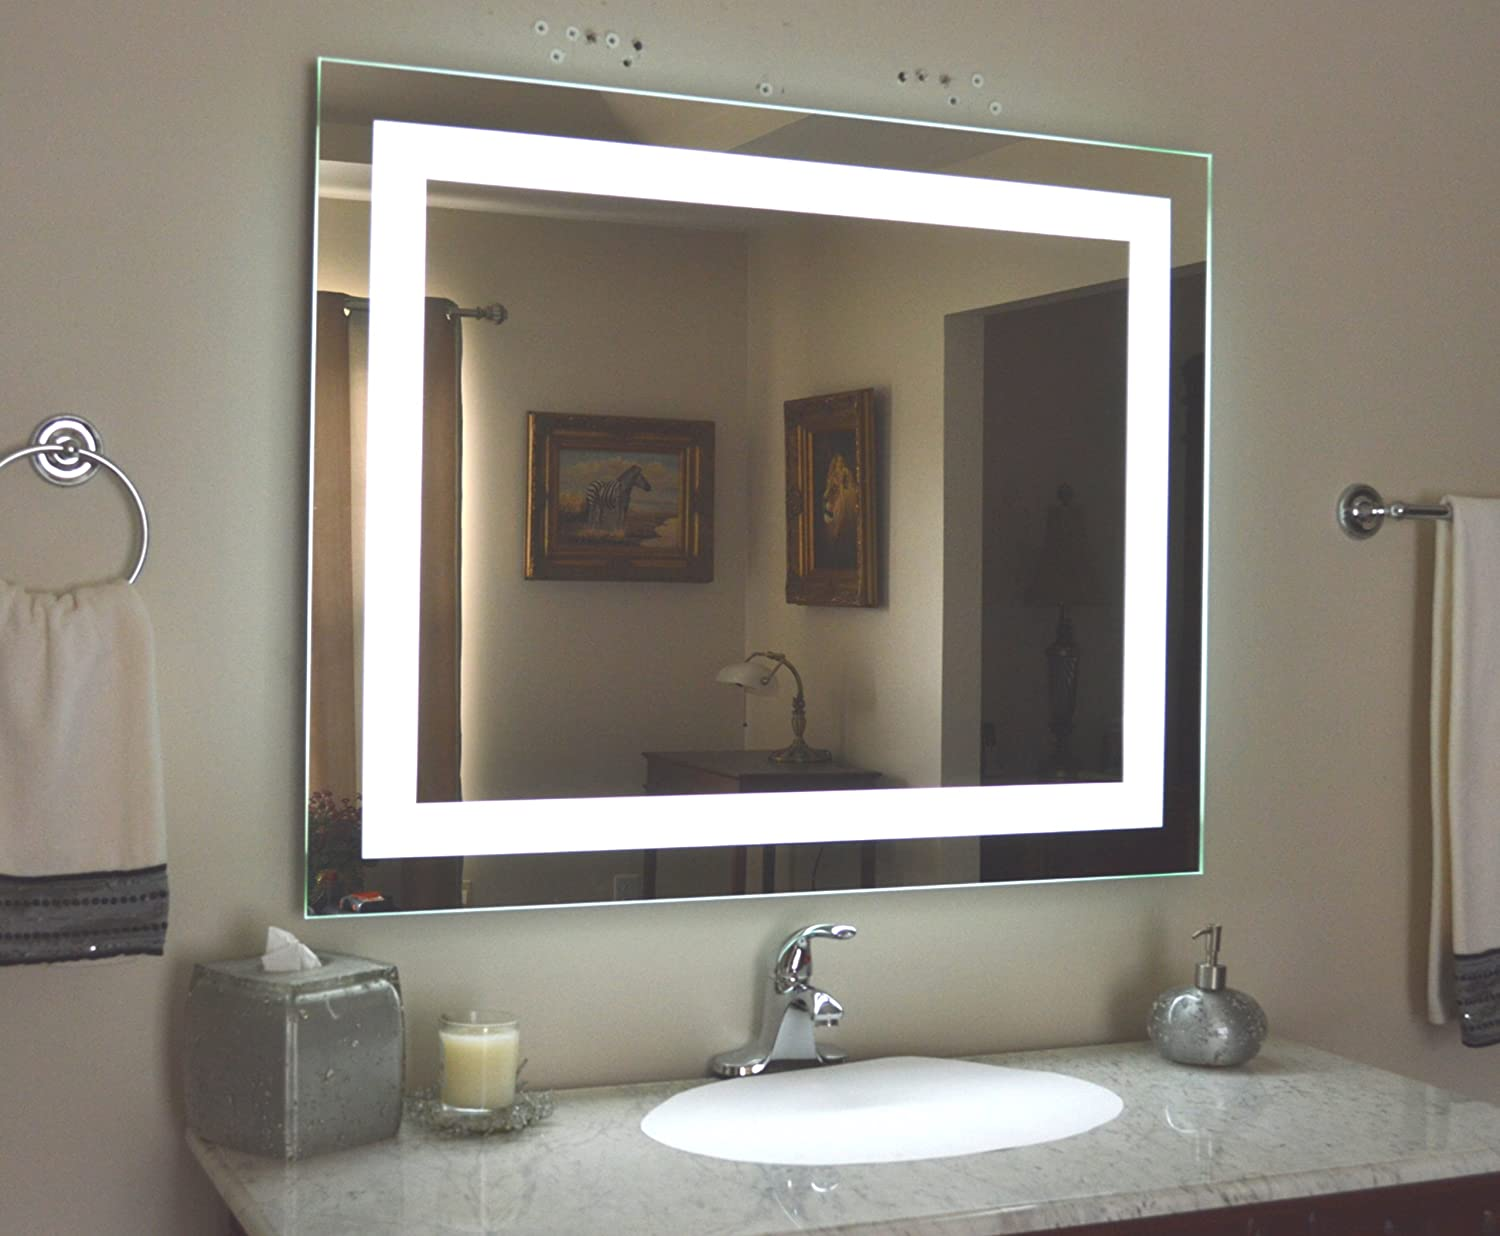 Amazon wall mounted lighted vanity mirror led mam84032 amazon wall mounted lighted vanity mirror led mam84032 commercial grade 40 home kitchen mozeypictures Image collections